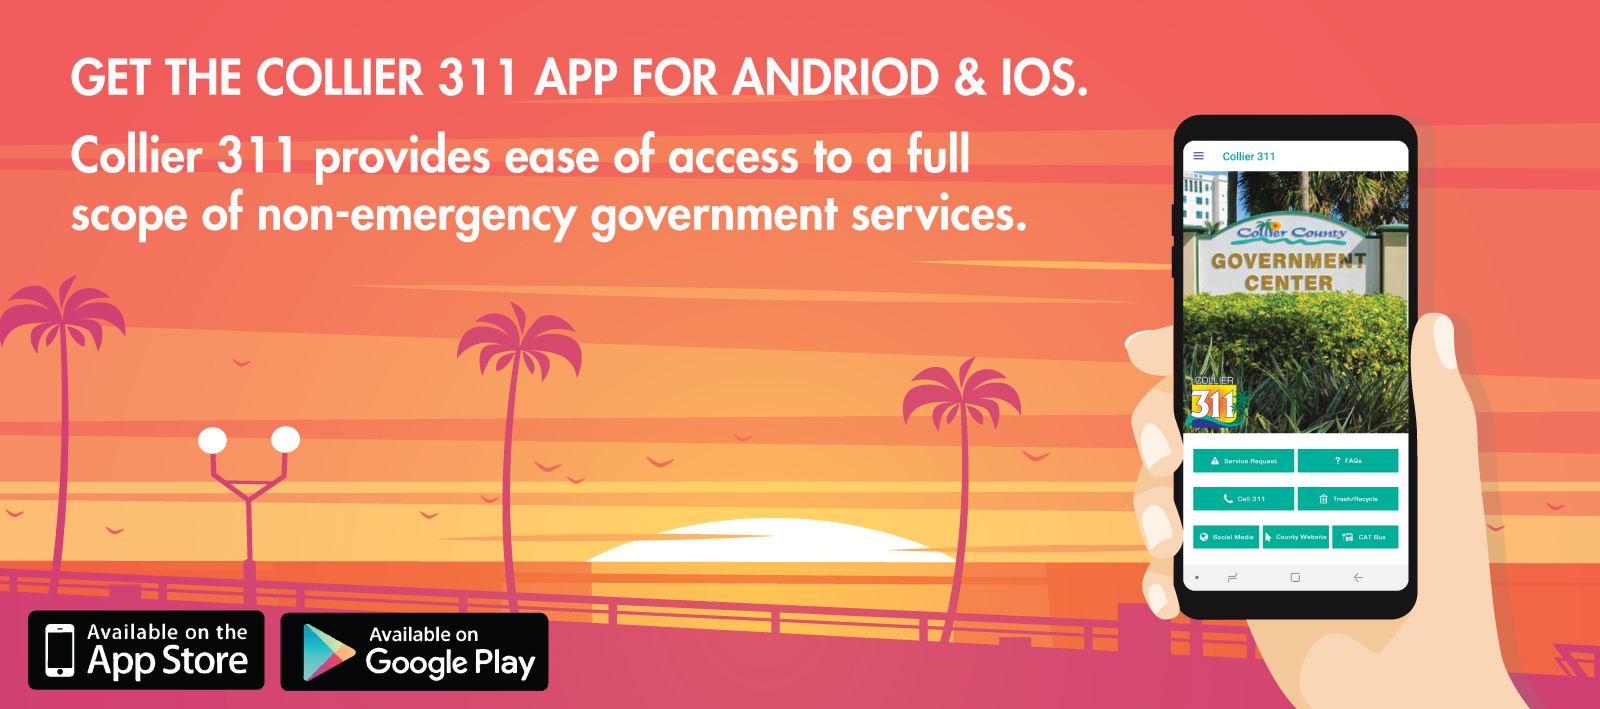 Collier 311 provides ease of access for non emergency government services. Download the app for Android and IOS